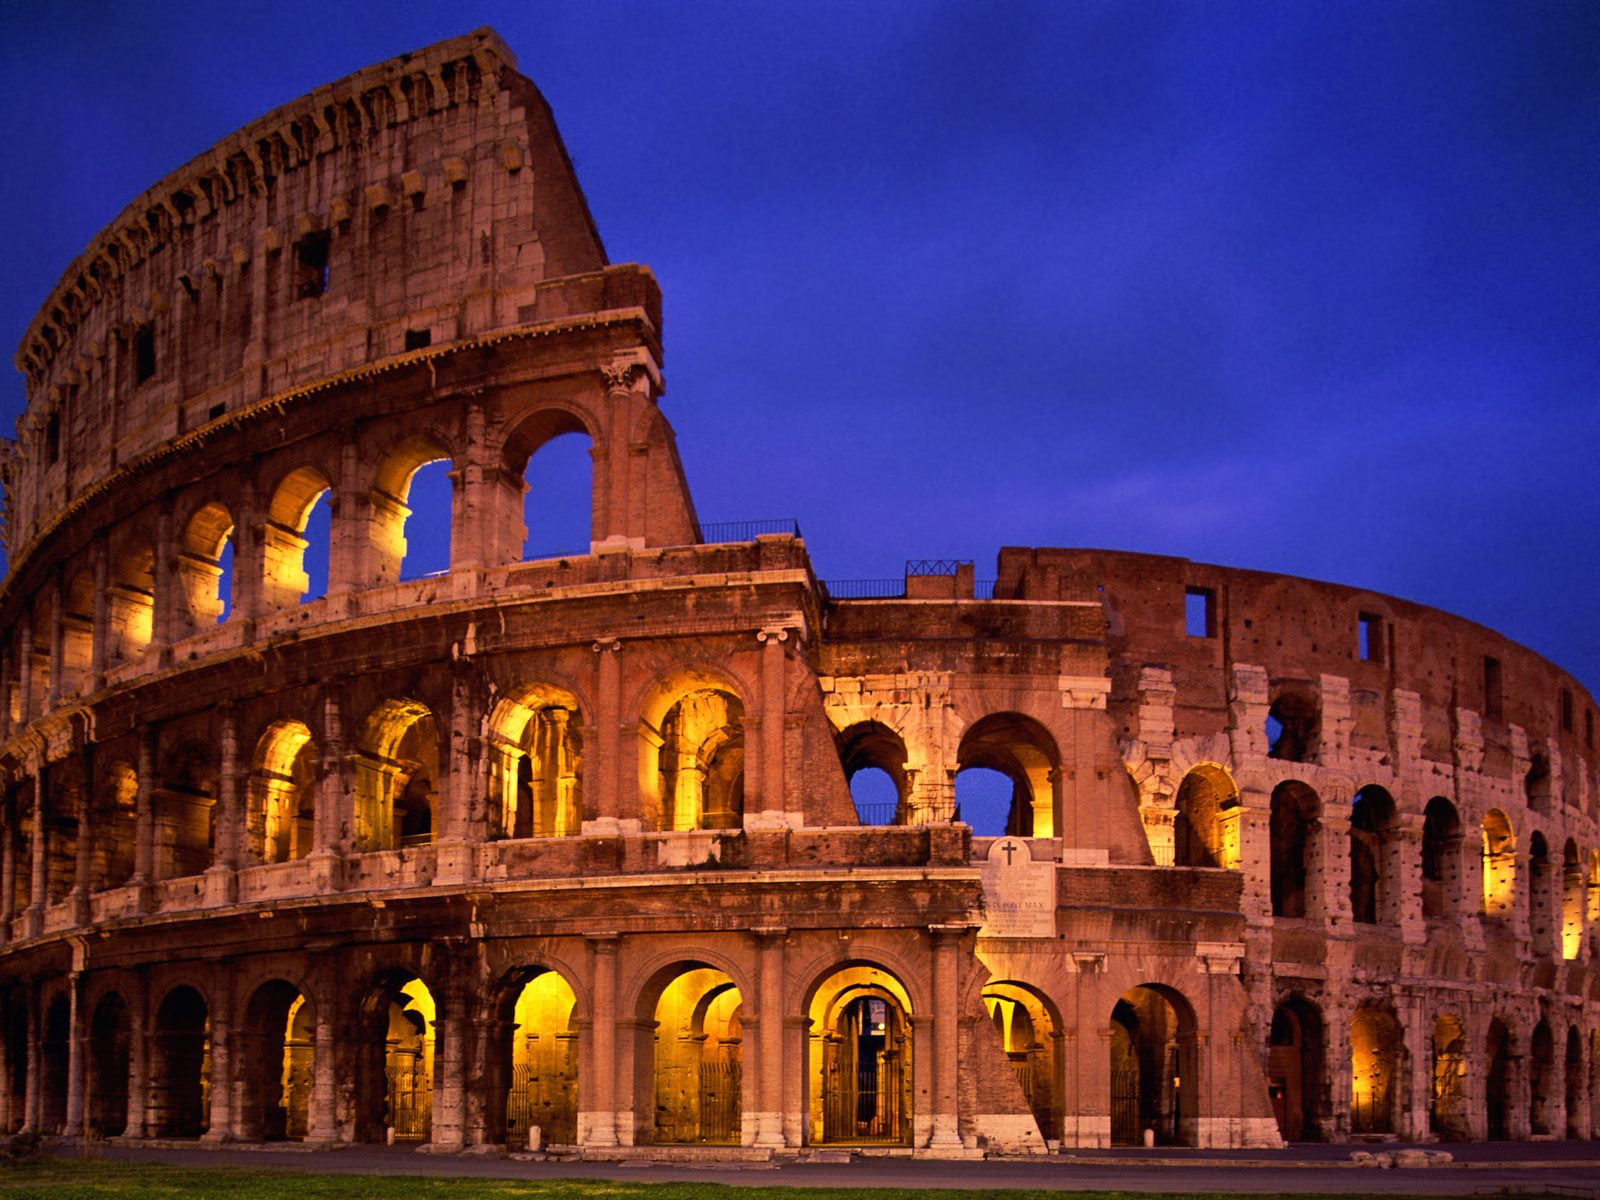 The Colosseum Rome Italy wallpaper